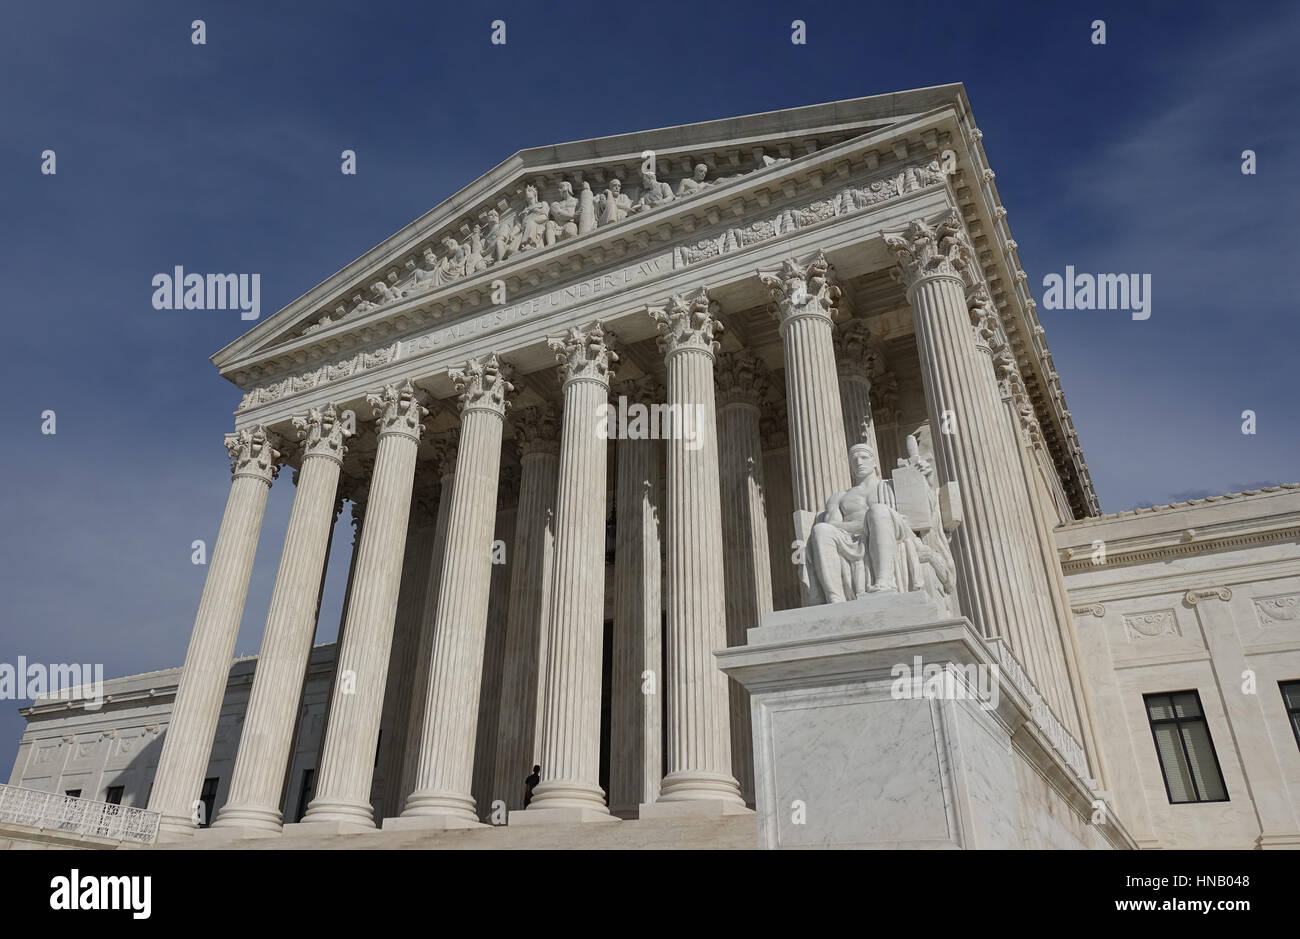 U.S. Supreme Court Building low angle.  'Equal Justice Under Law' engraved above; Authority of Law statue - Stock Image